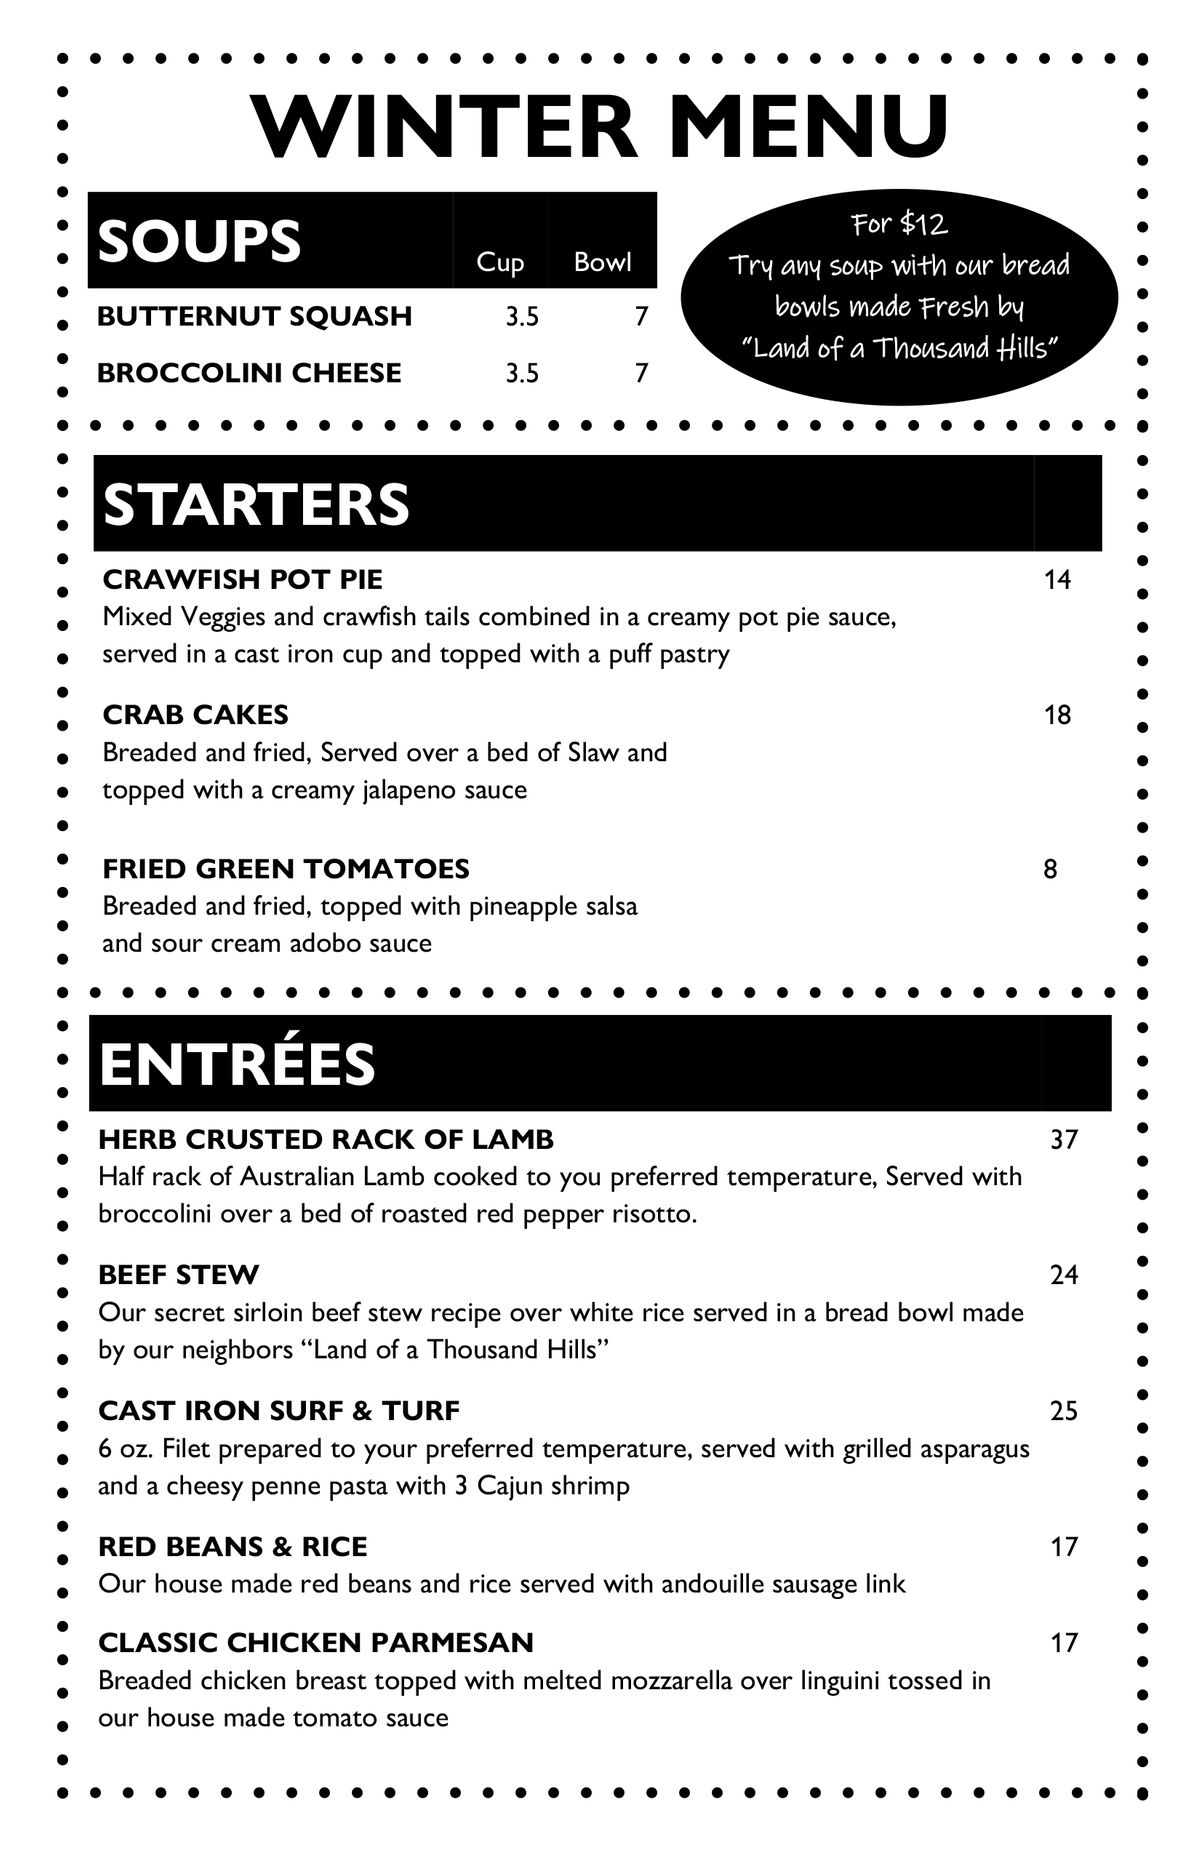 WINTER MENU PDF.jpg